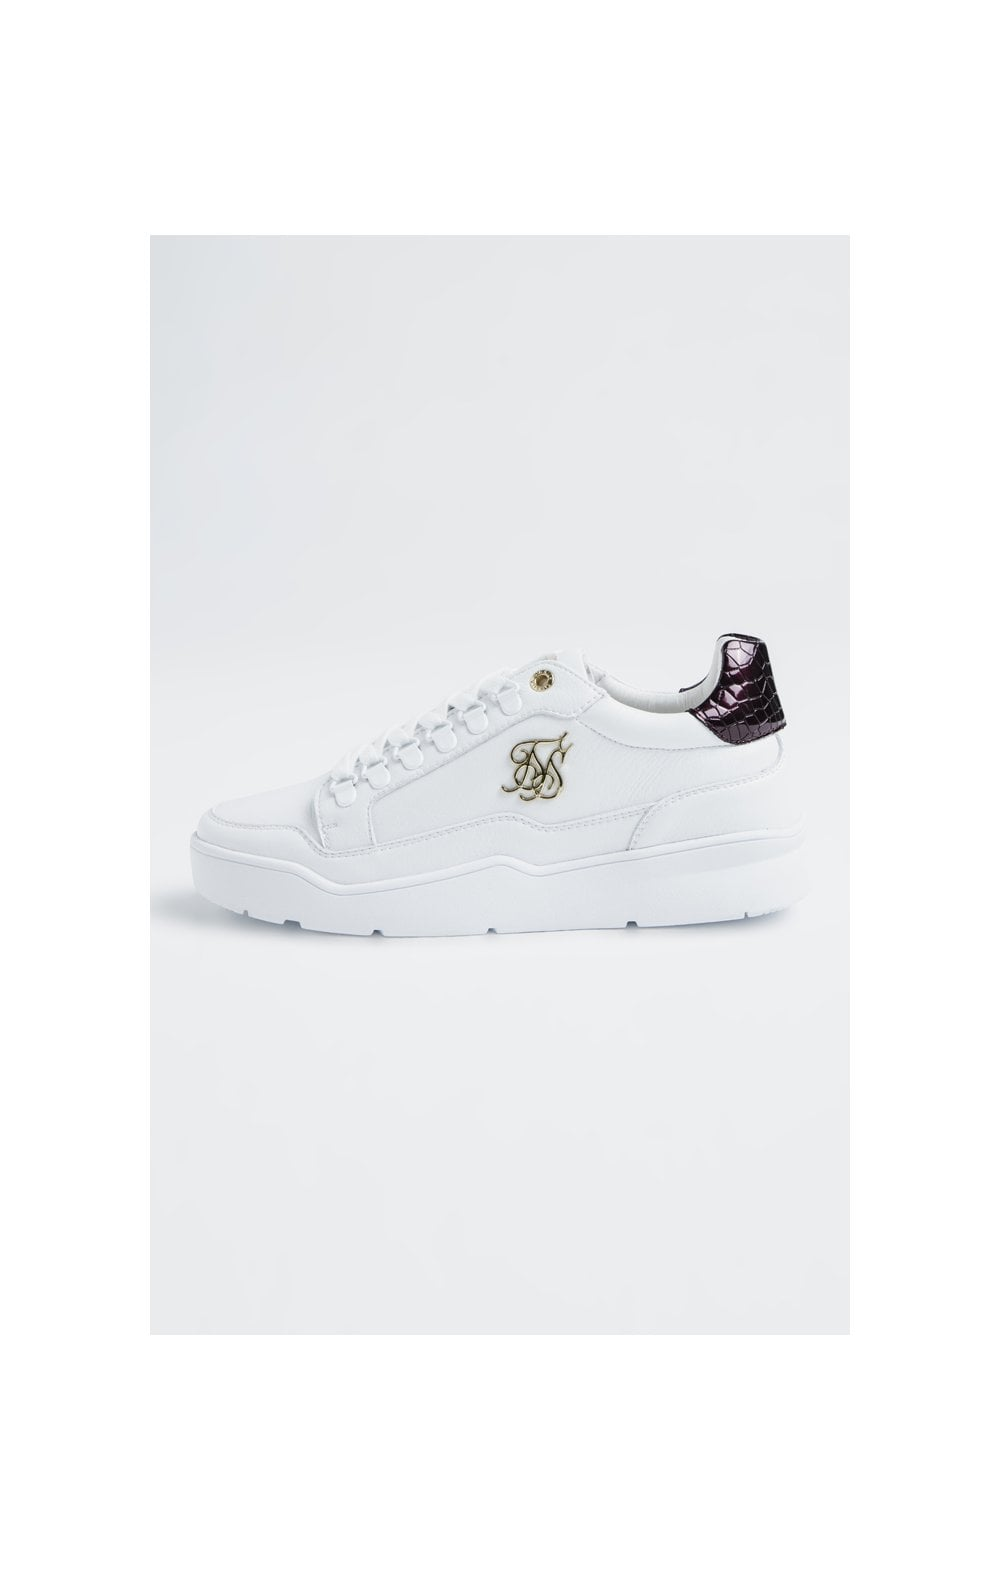 SikSilk D-Ring Pursuit – White & Burgundy